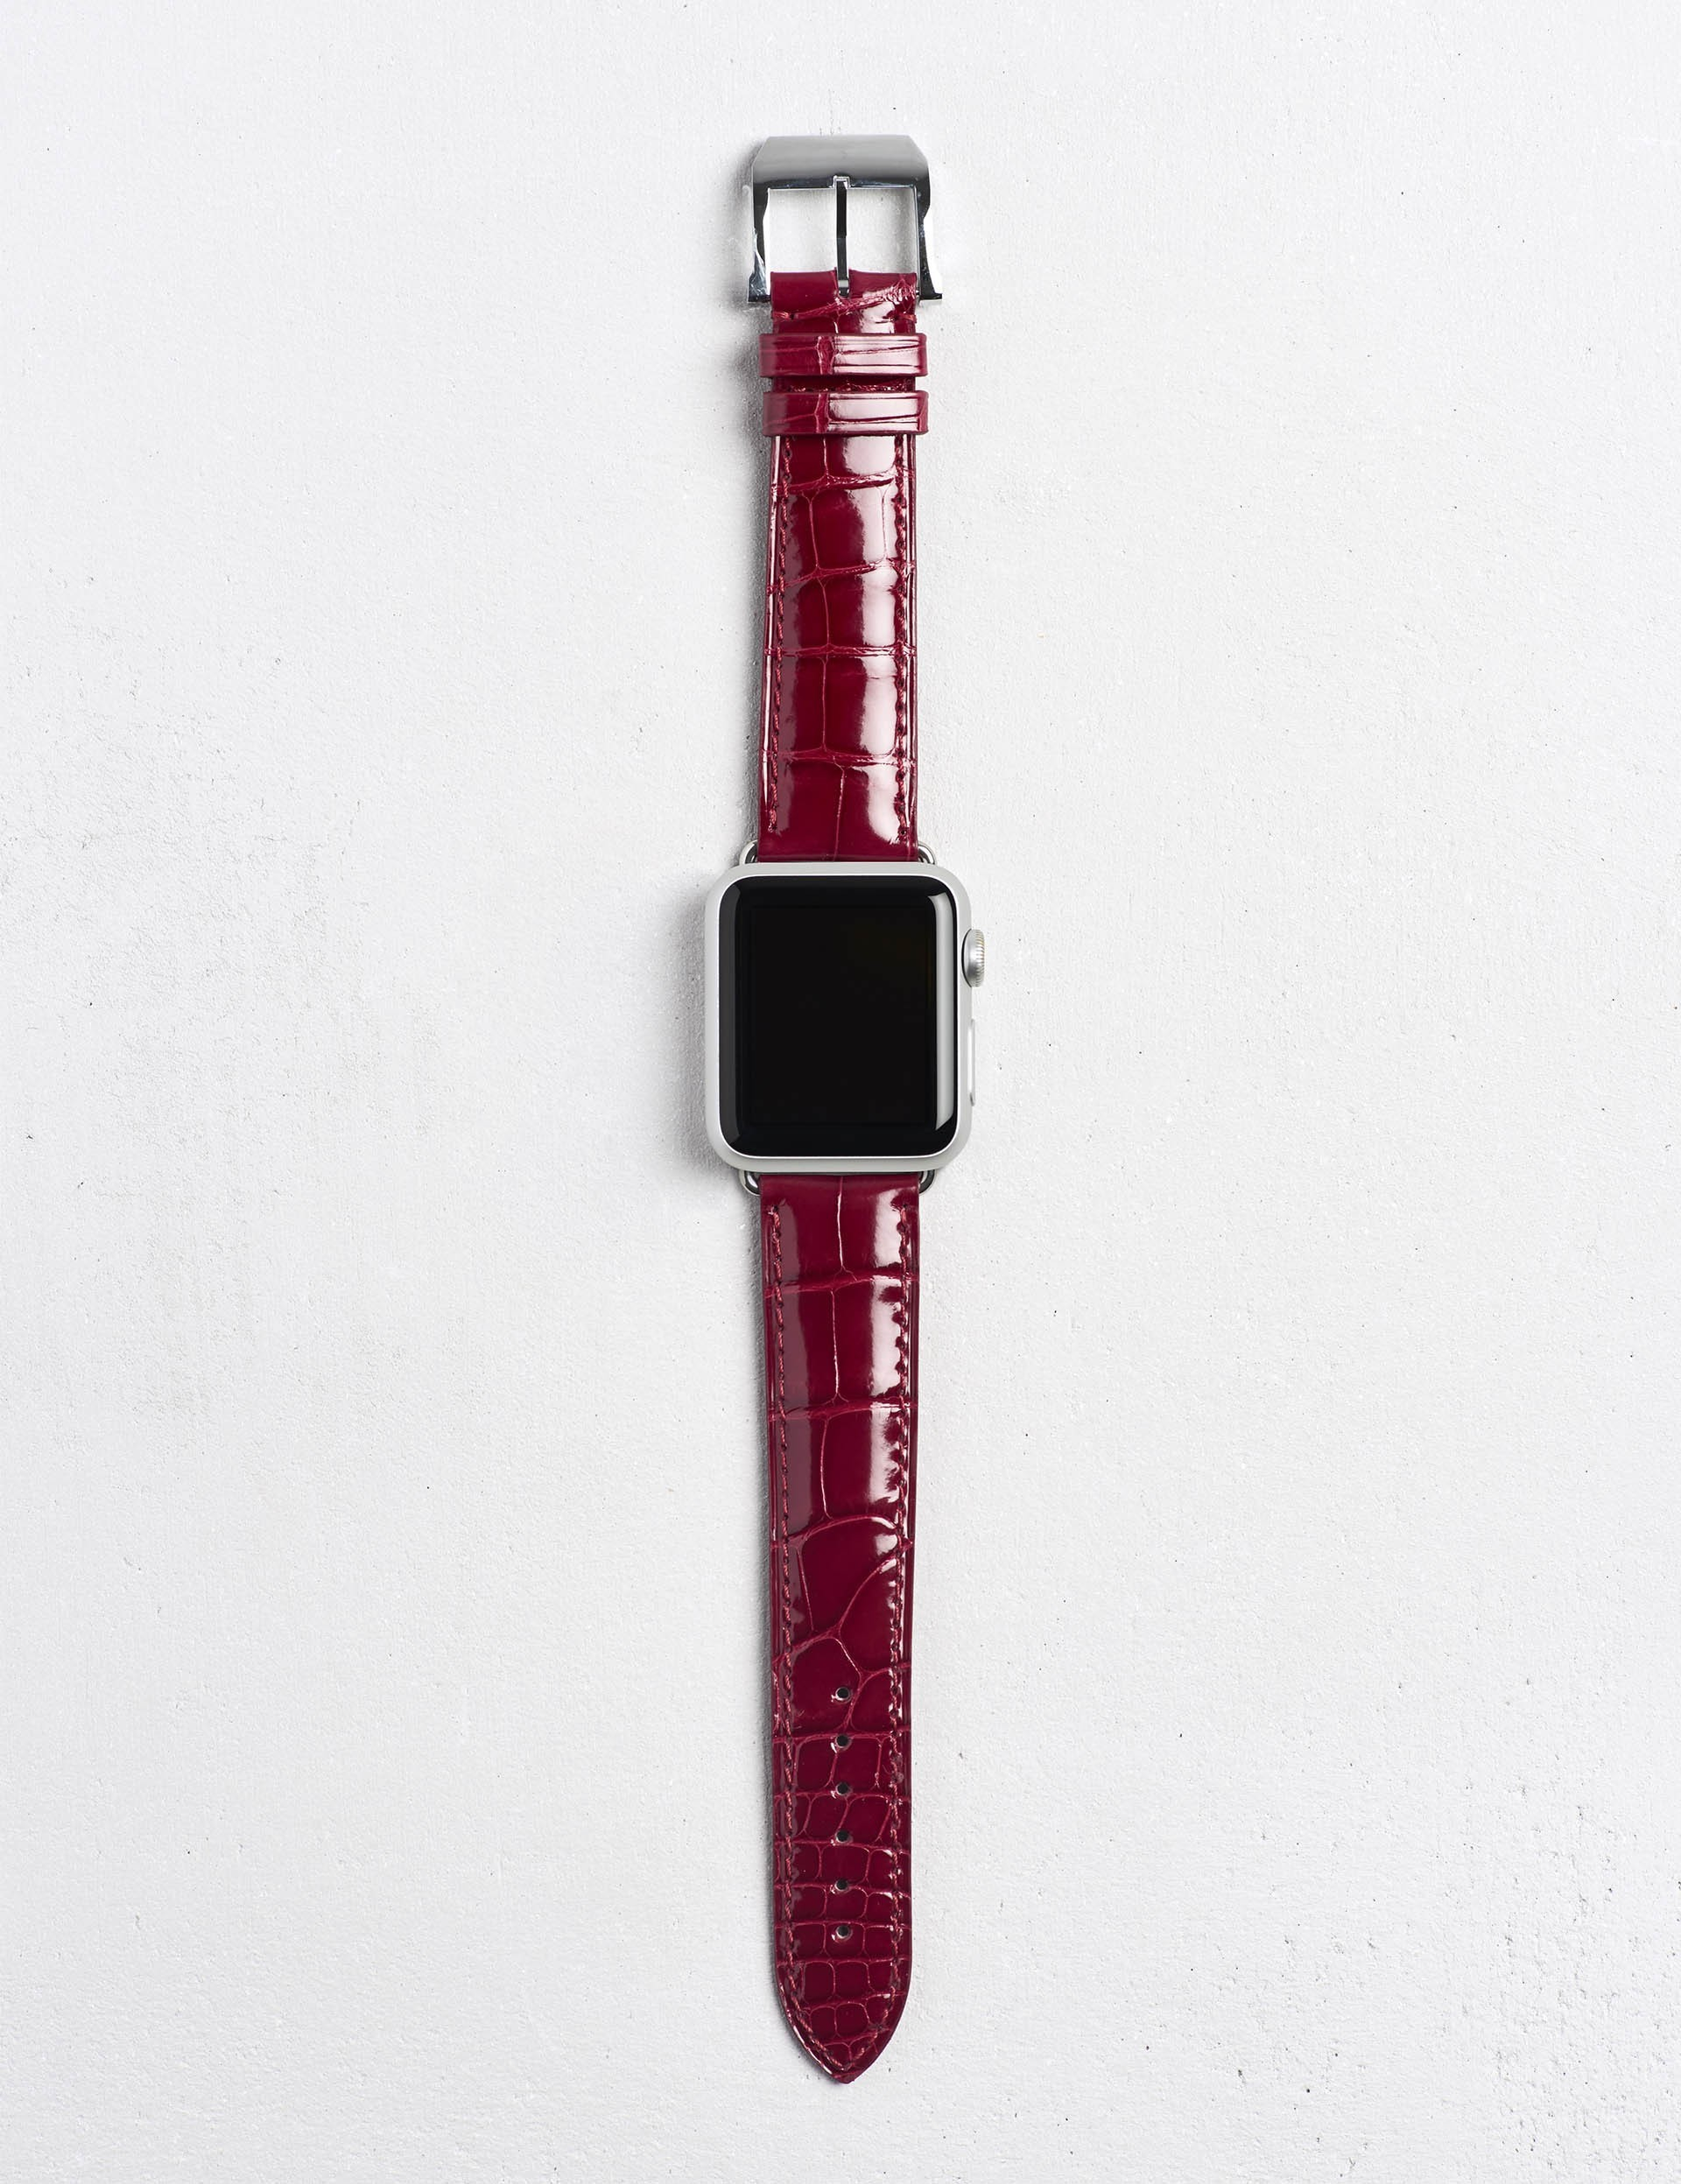 Apple watch用 Camille Fournet 革製ベルト4色